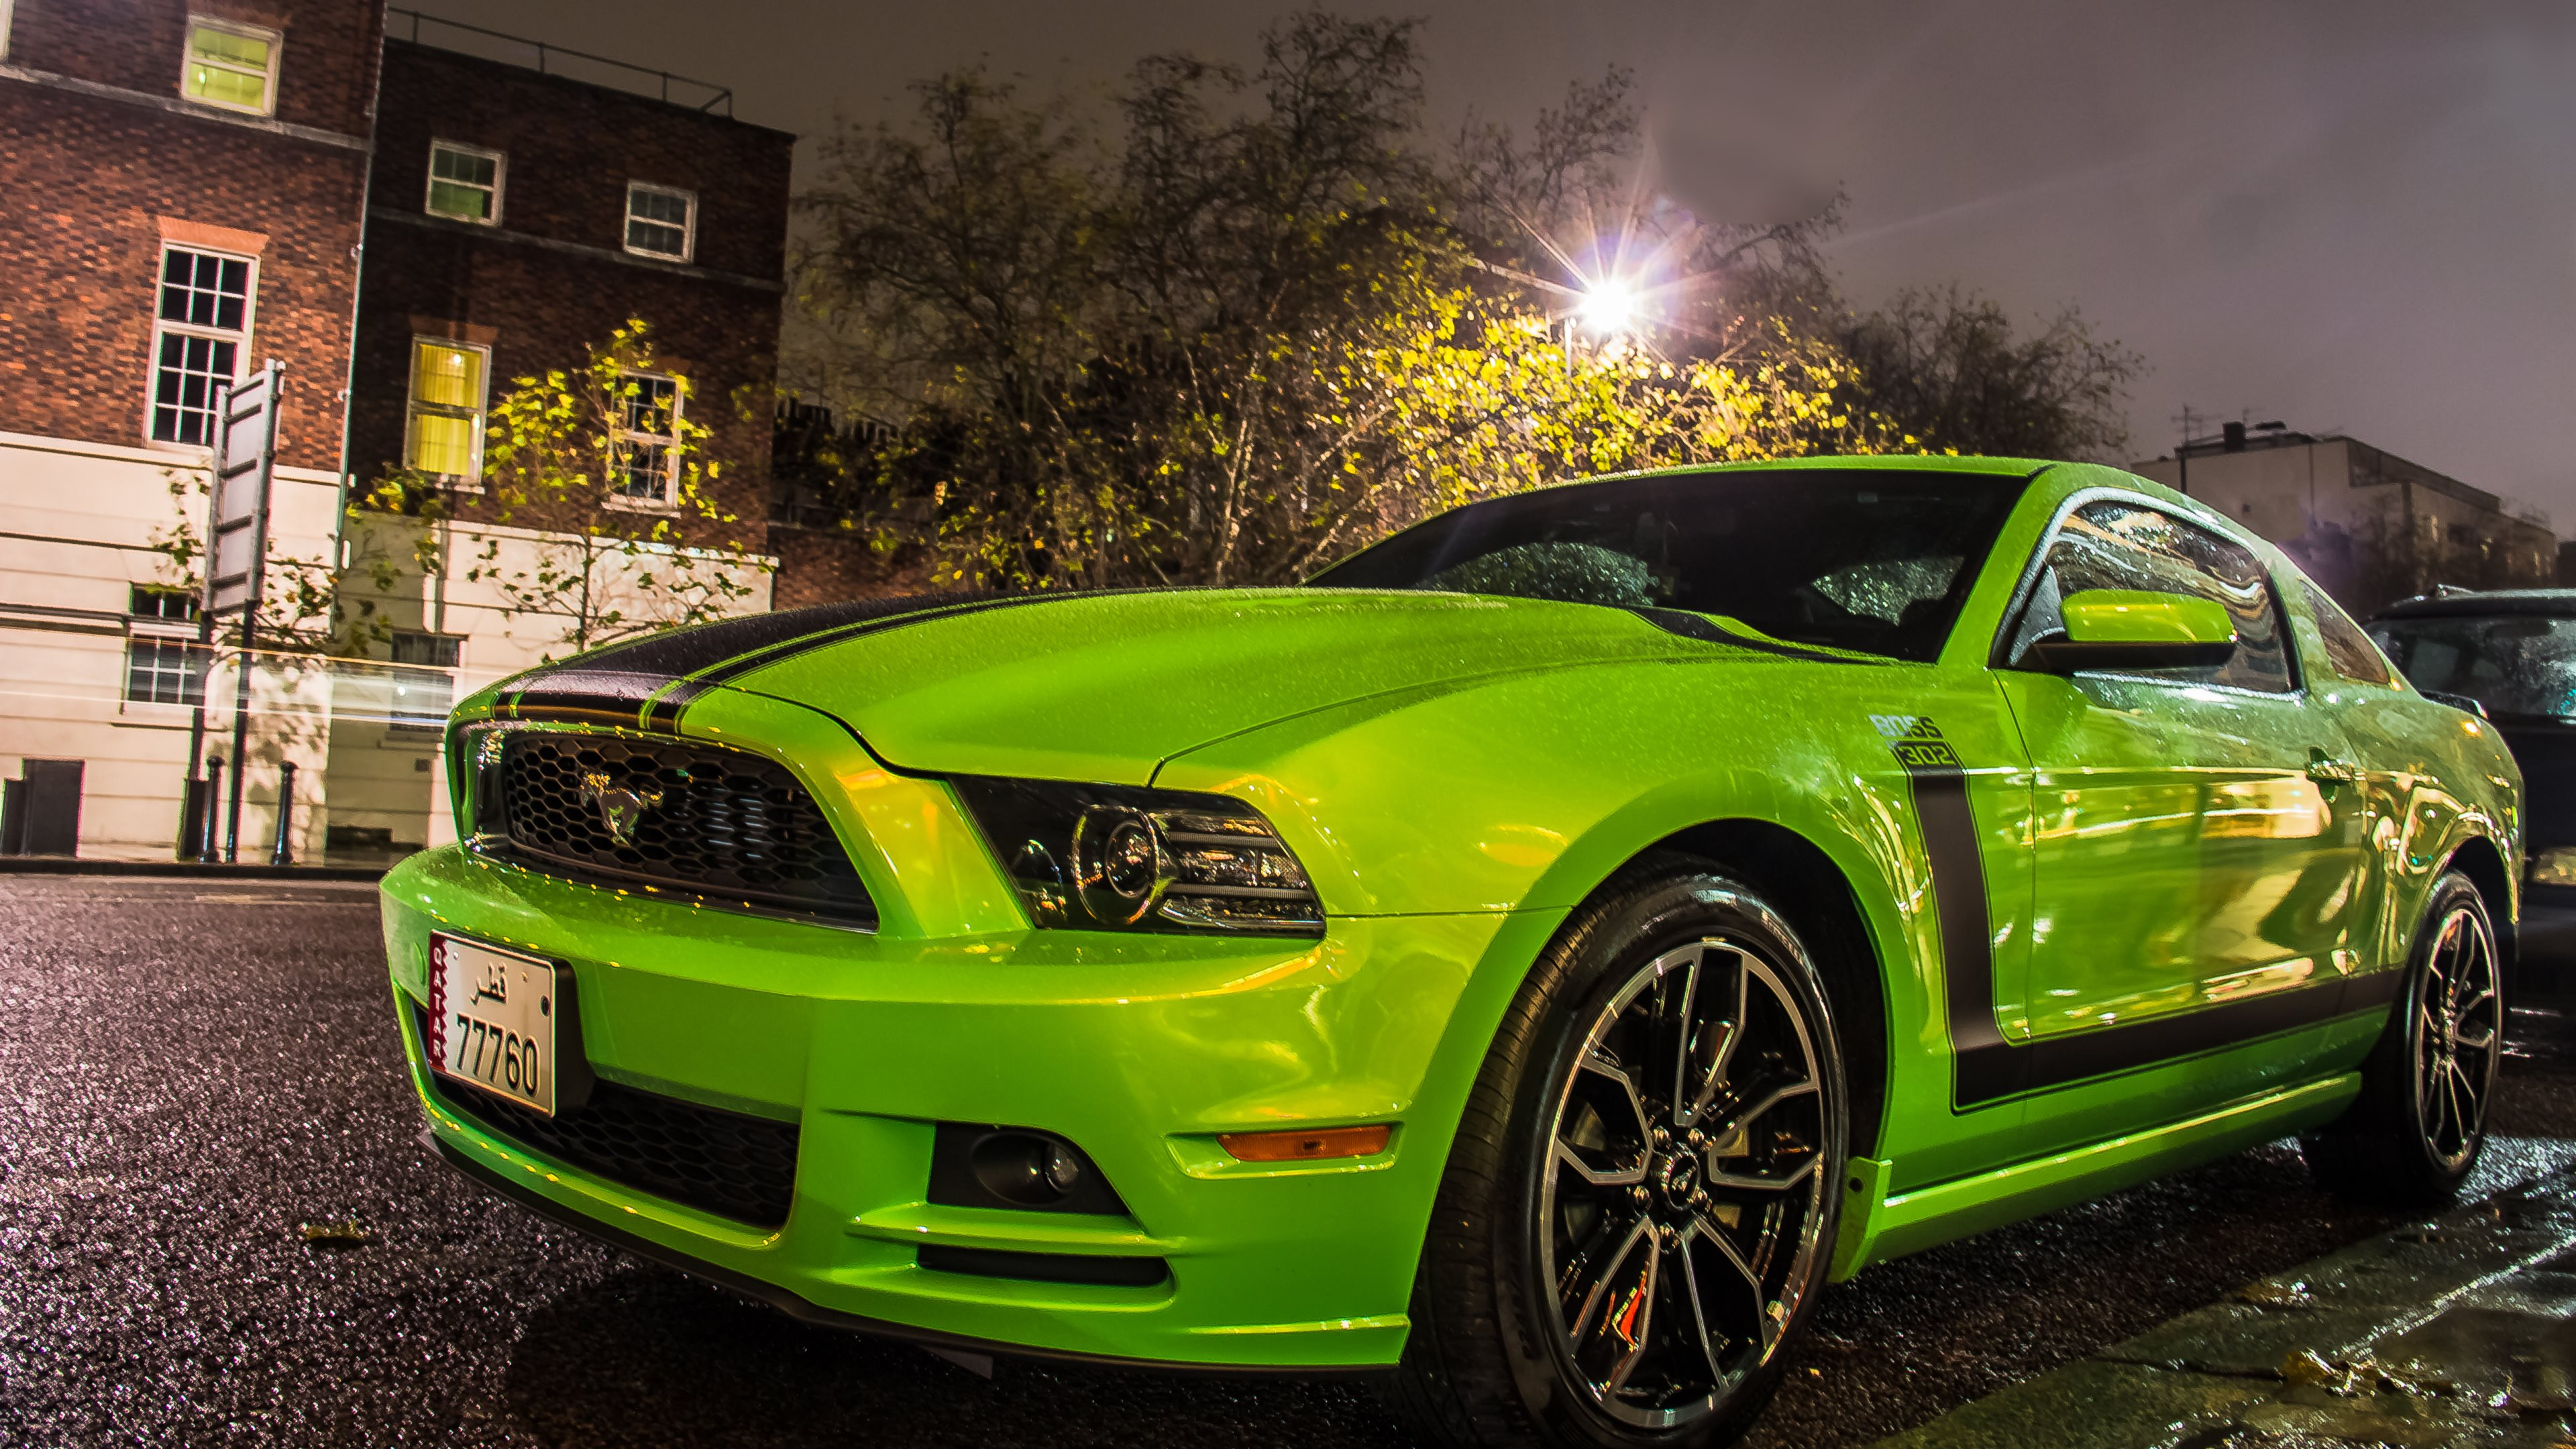 Free Download Download Image 4k Ultra Hd Wallpaper Ford Mustang Pc